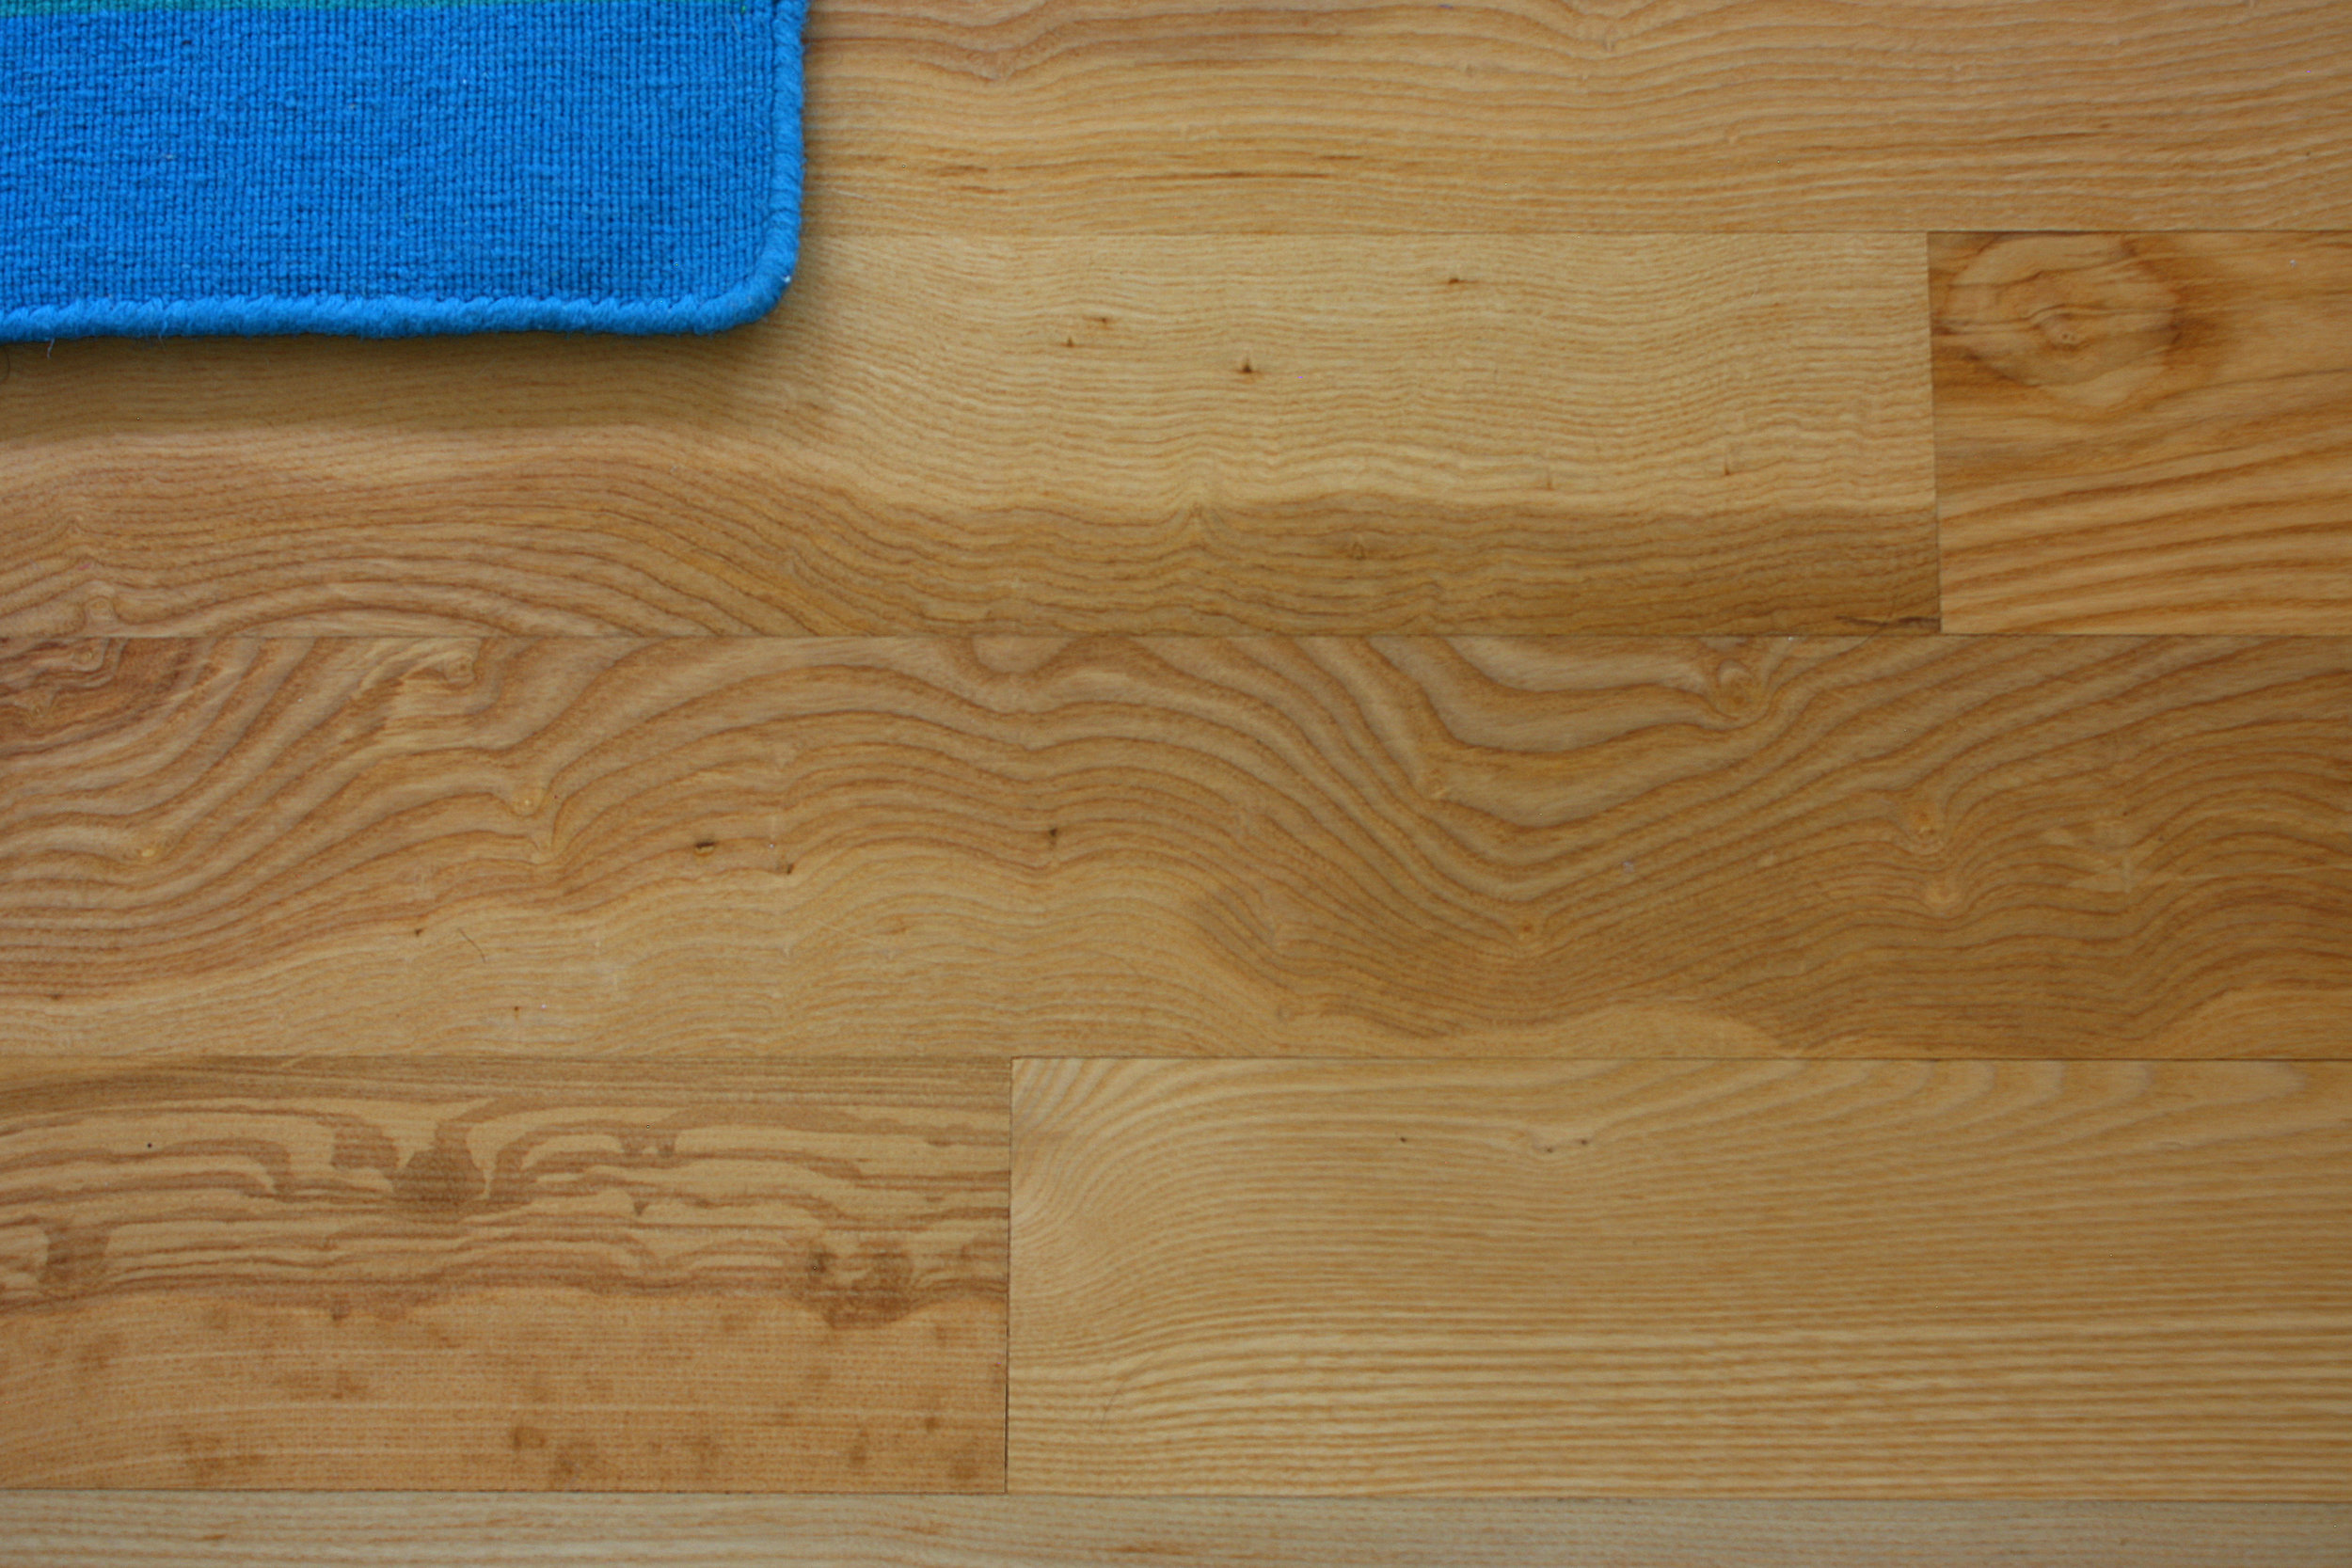 Oregon Ash's characteristic marbling is on full display in these floor boards.